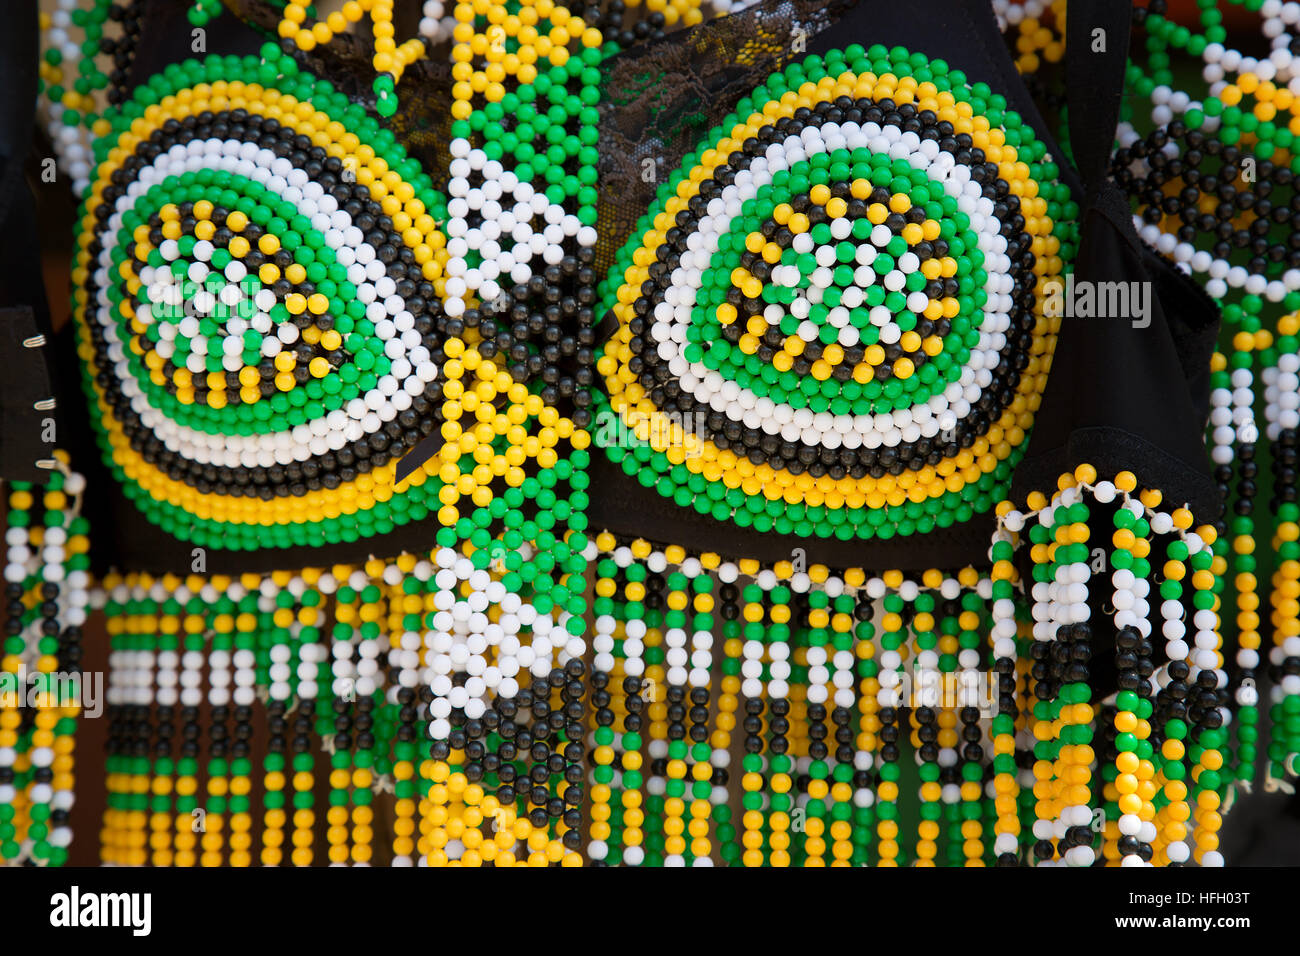 Closeup of South African tribal female dress made from bead work, for sale at a street market. - Stock Image